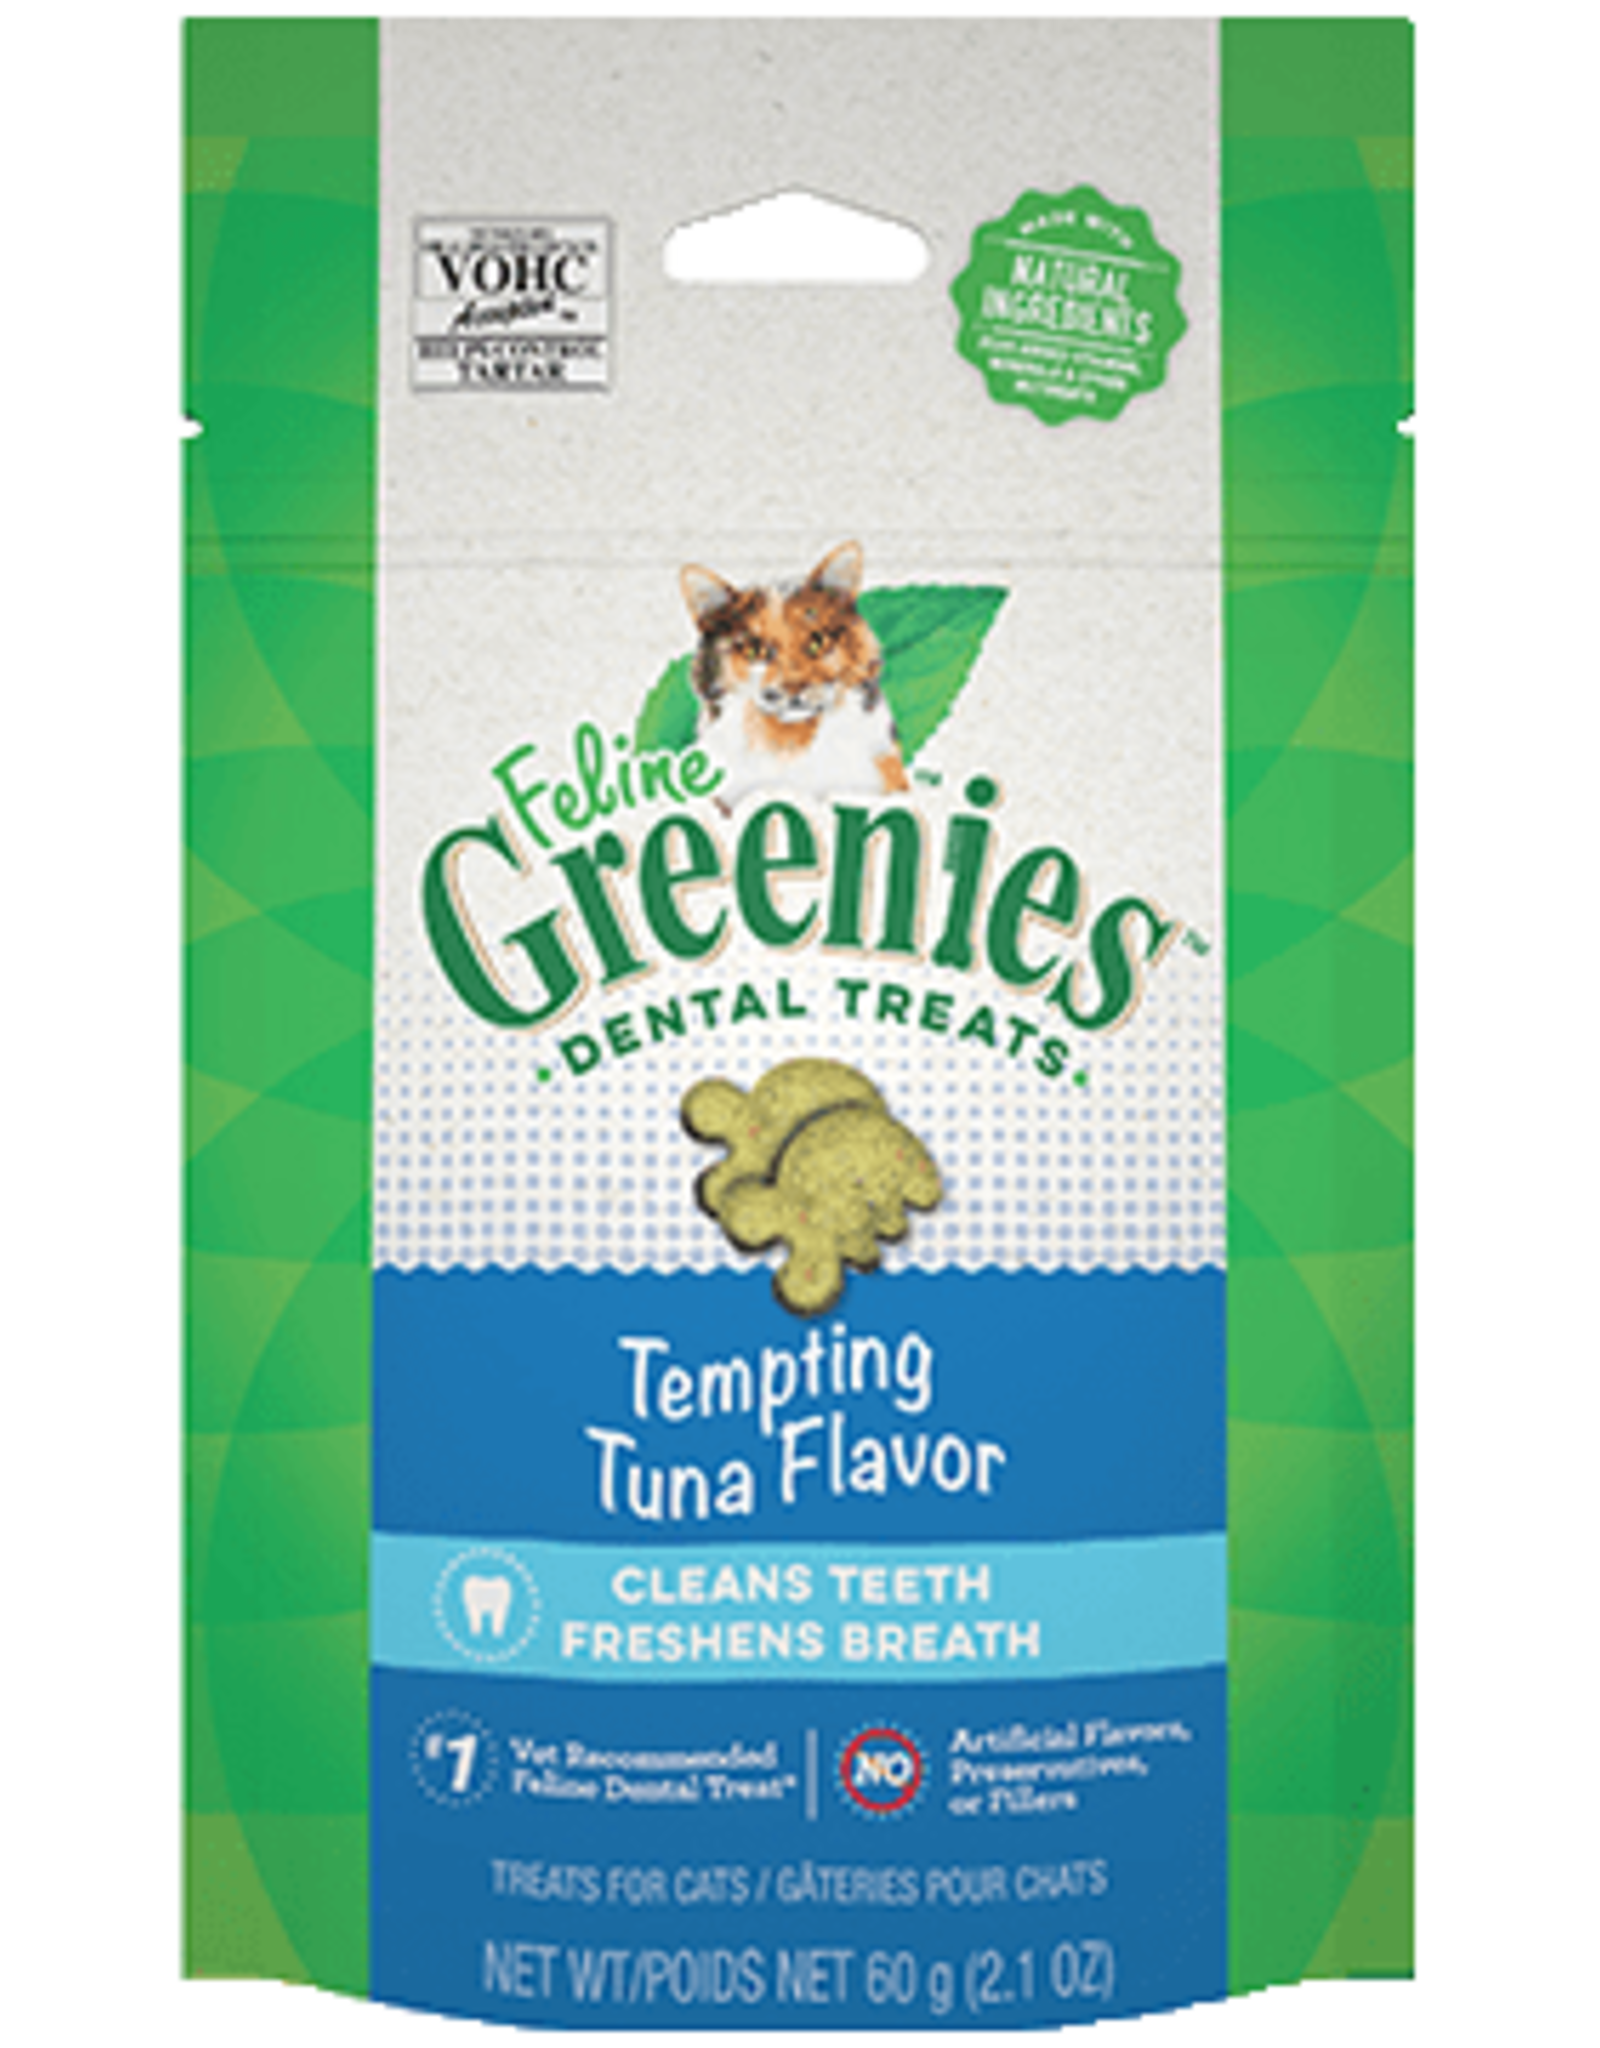 Greenies Feline Greenies Cat Dental Treats Tempting Tuna Flavor